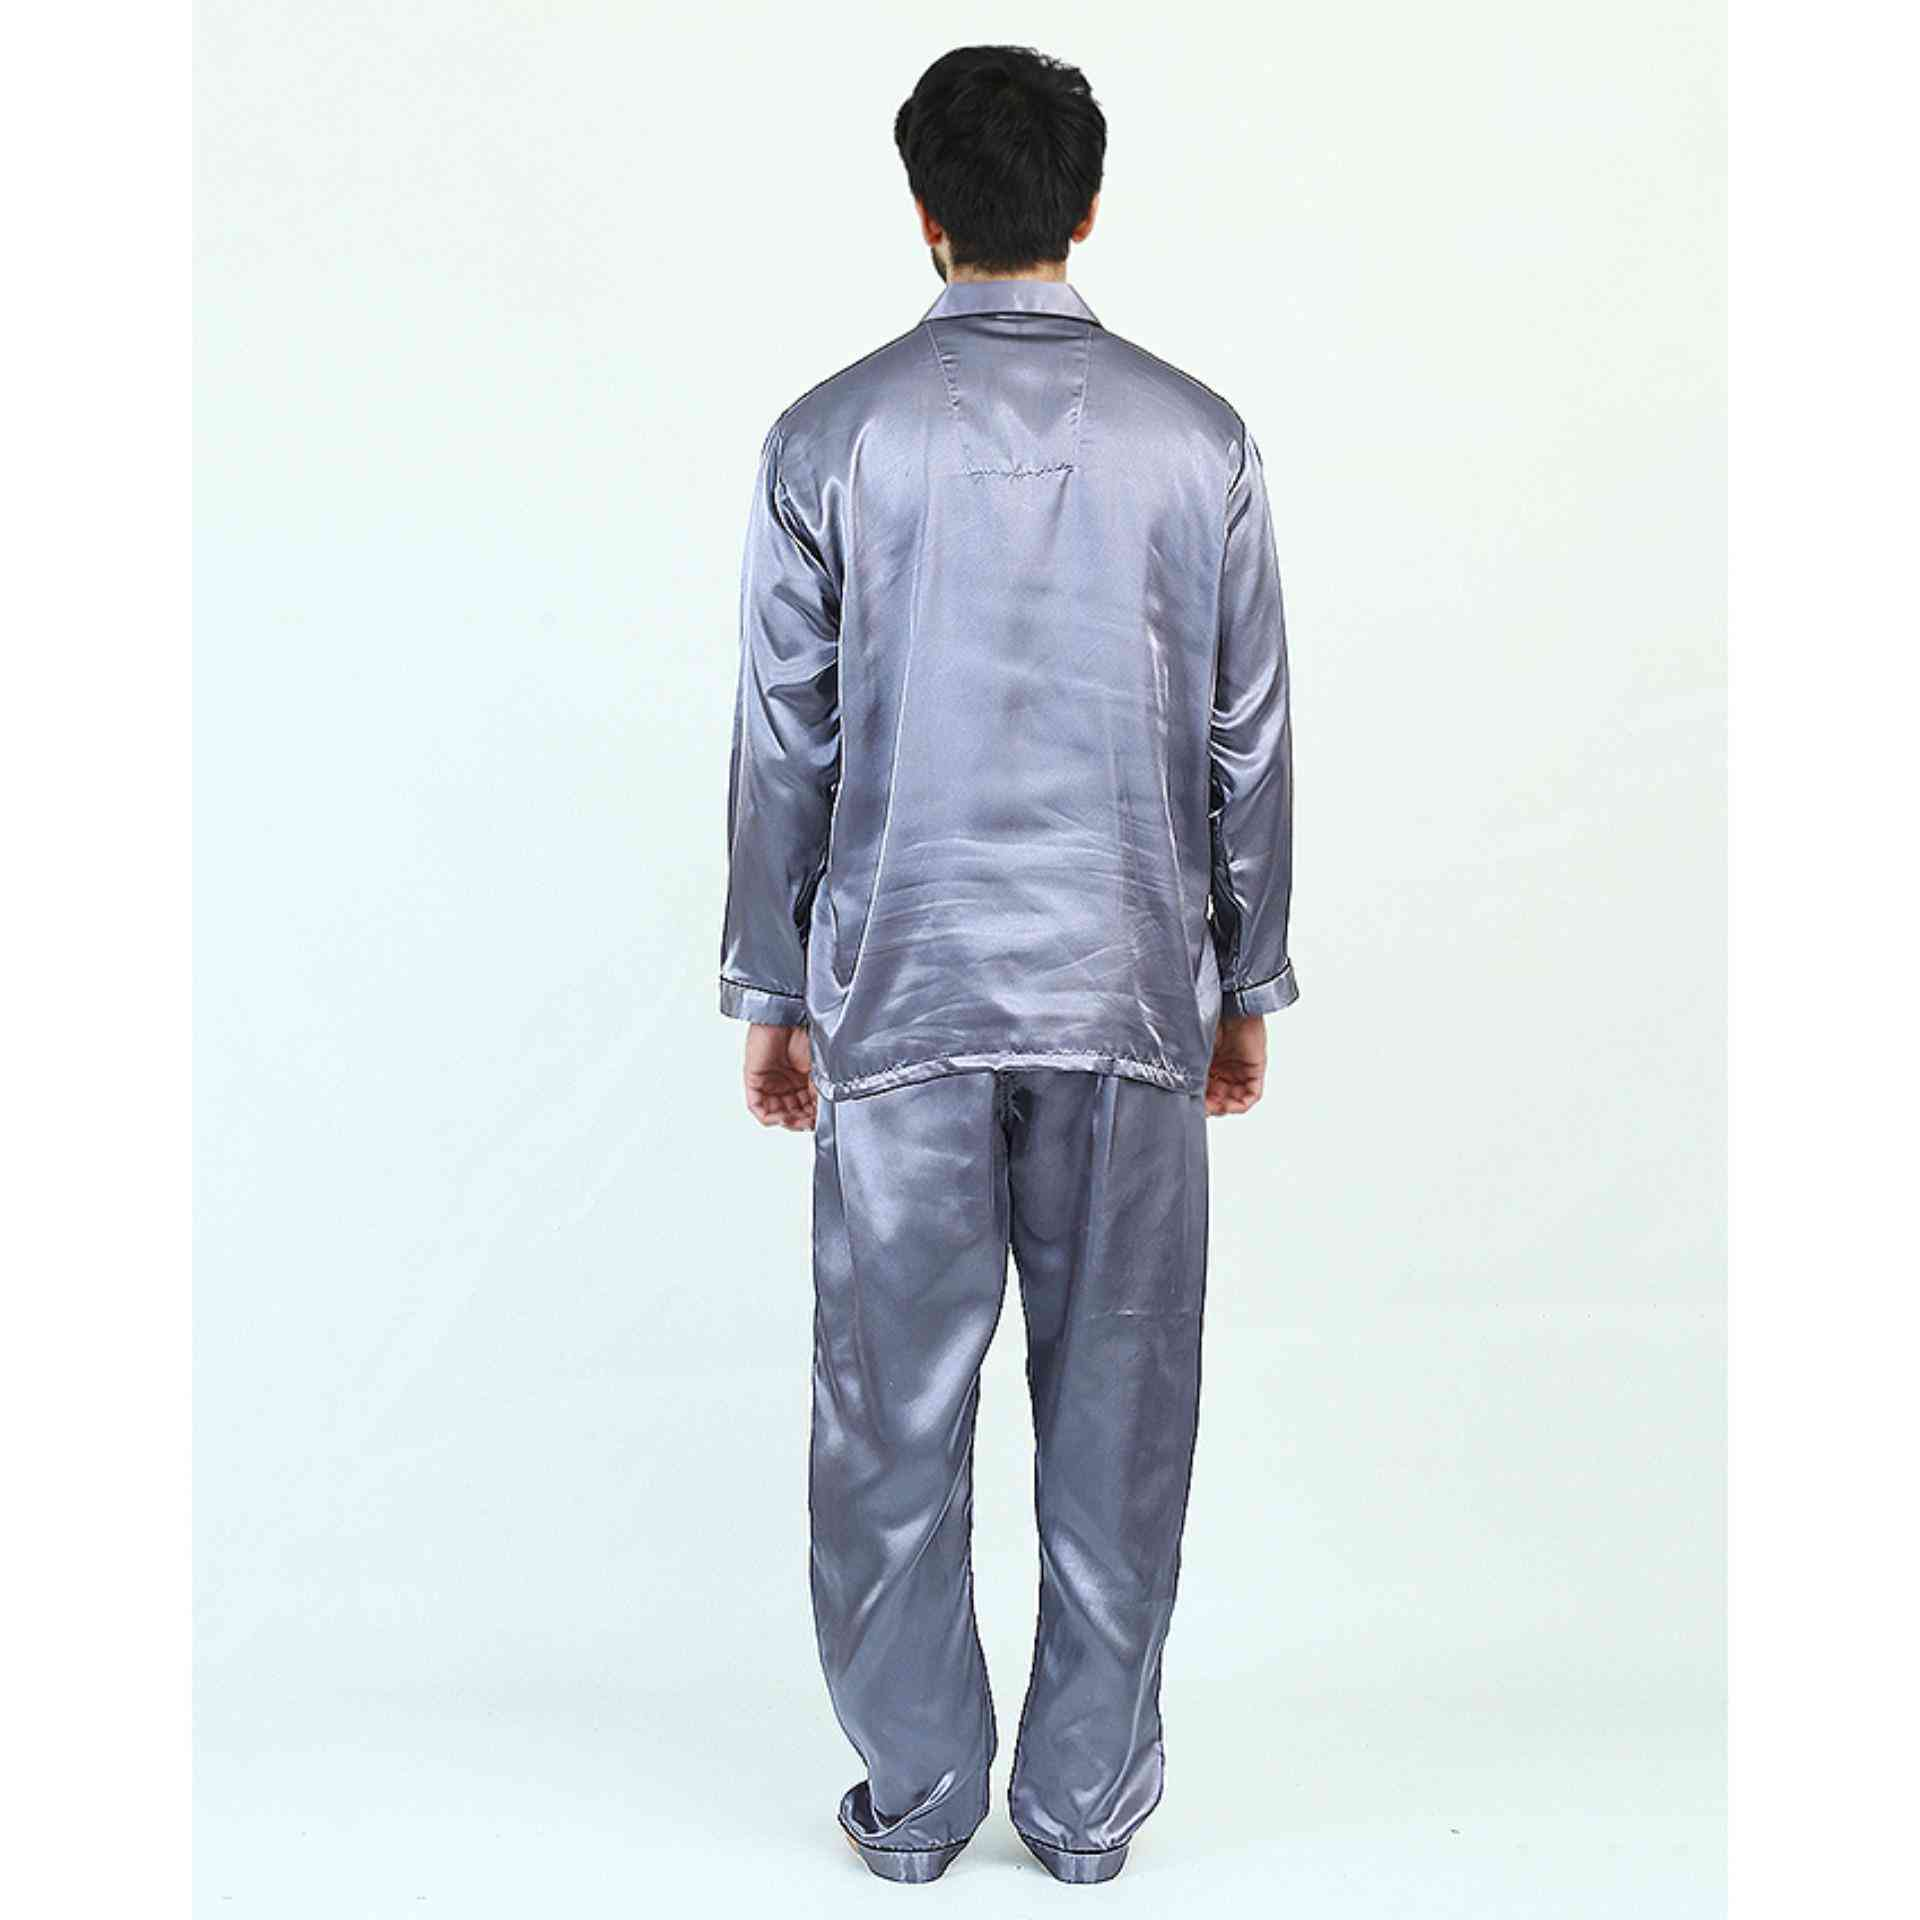 Pack of 2 Satin Silk Night Suit (Pajama + Shirt) for Men - Light Grey